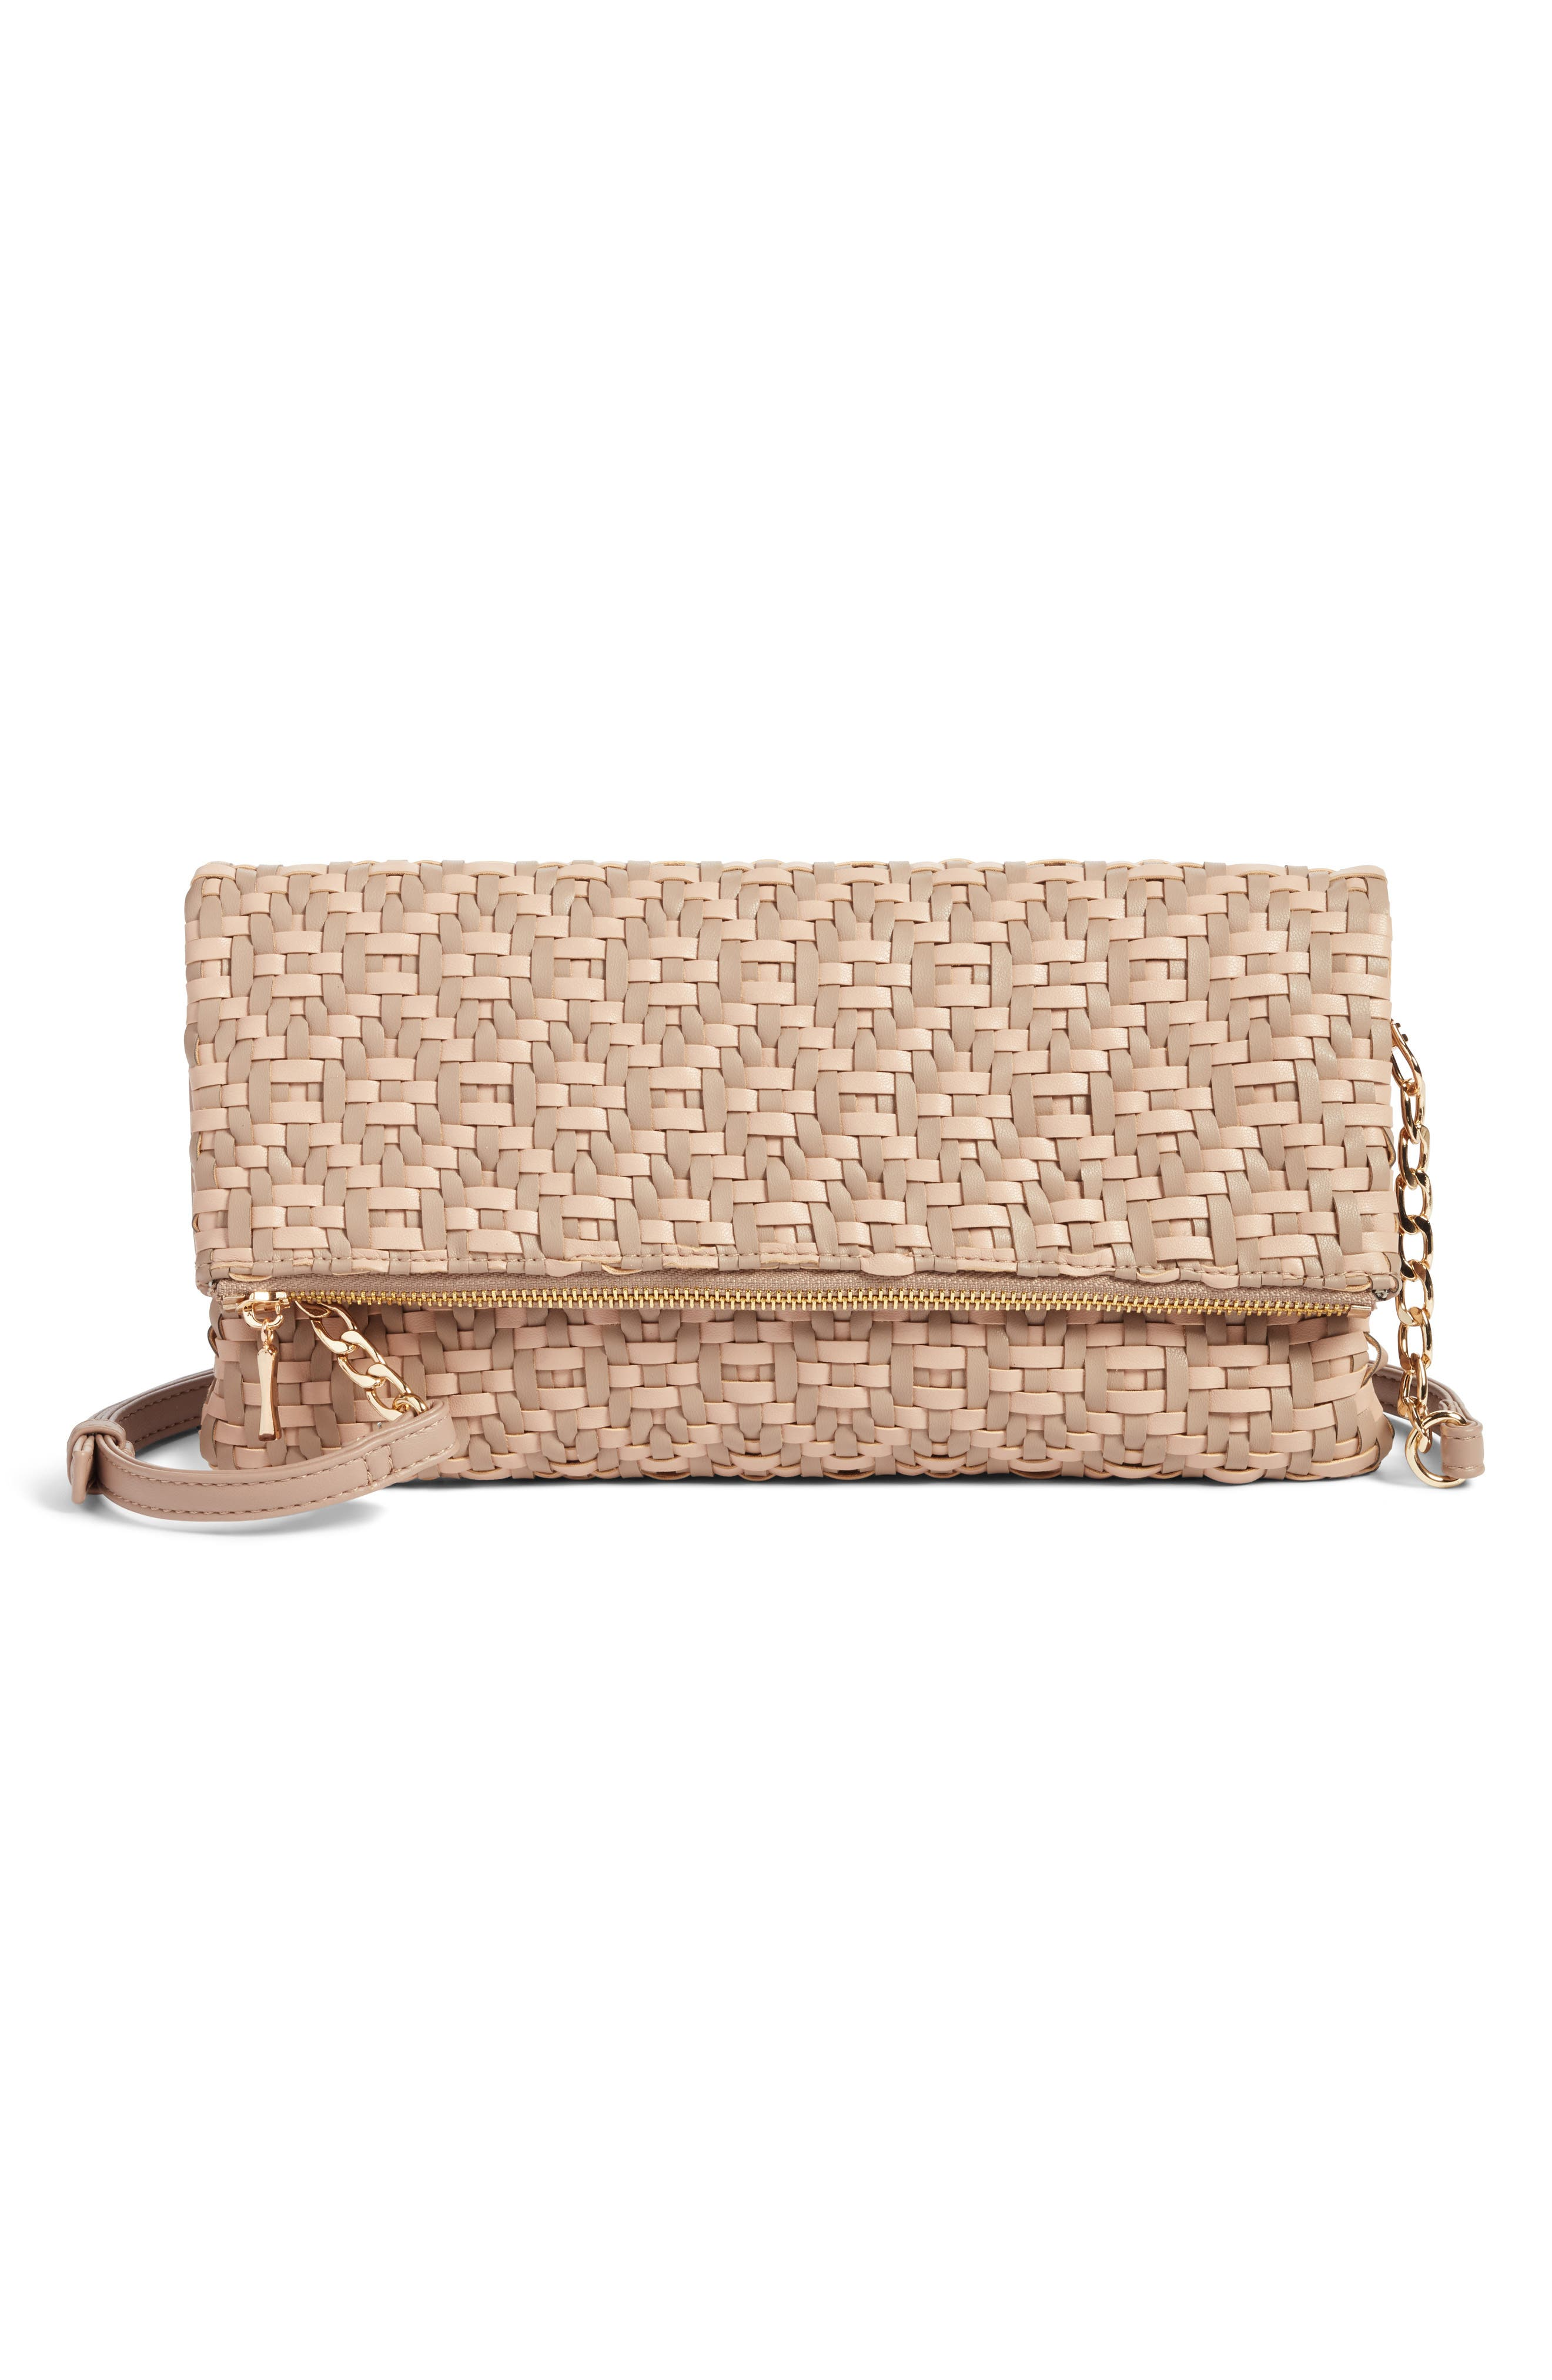 Alternate Image 1 Selected - Sole Society Lisbeth Weave Foldover Clutch